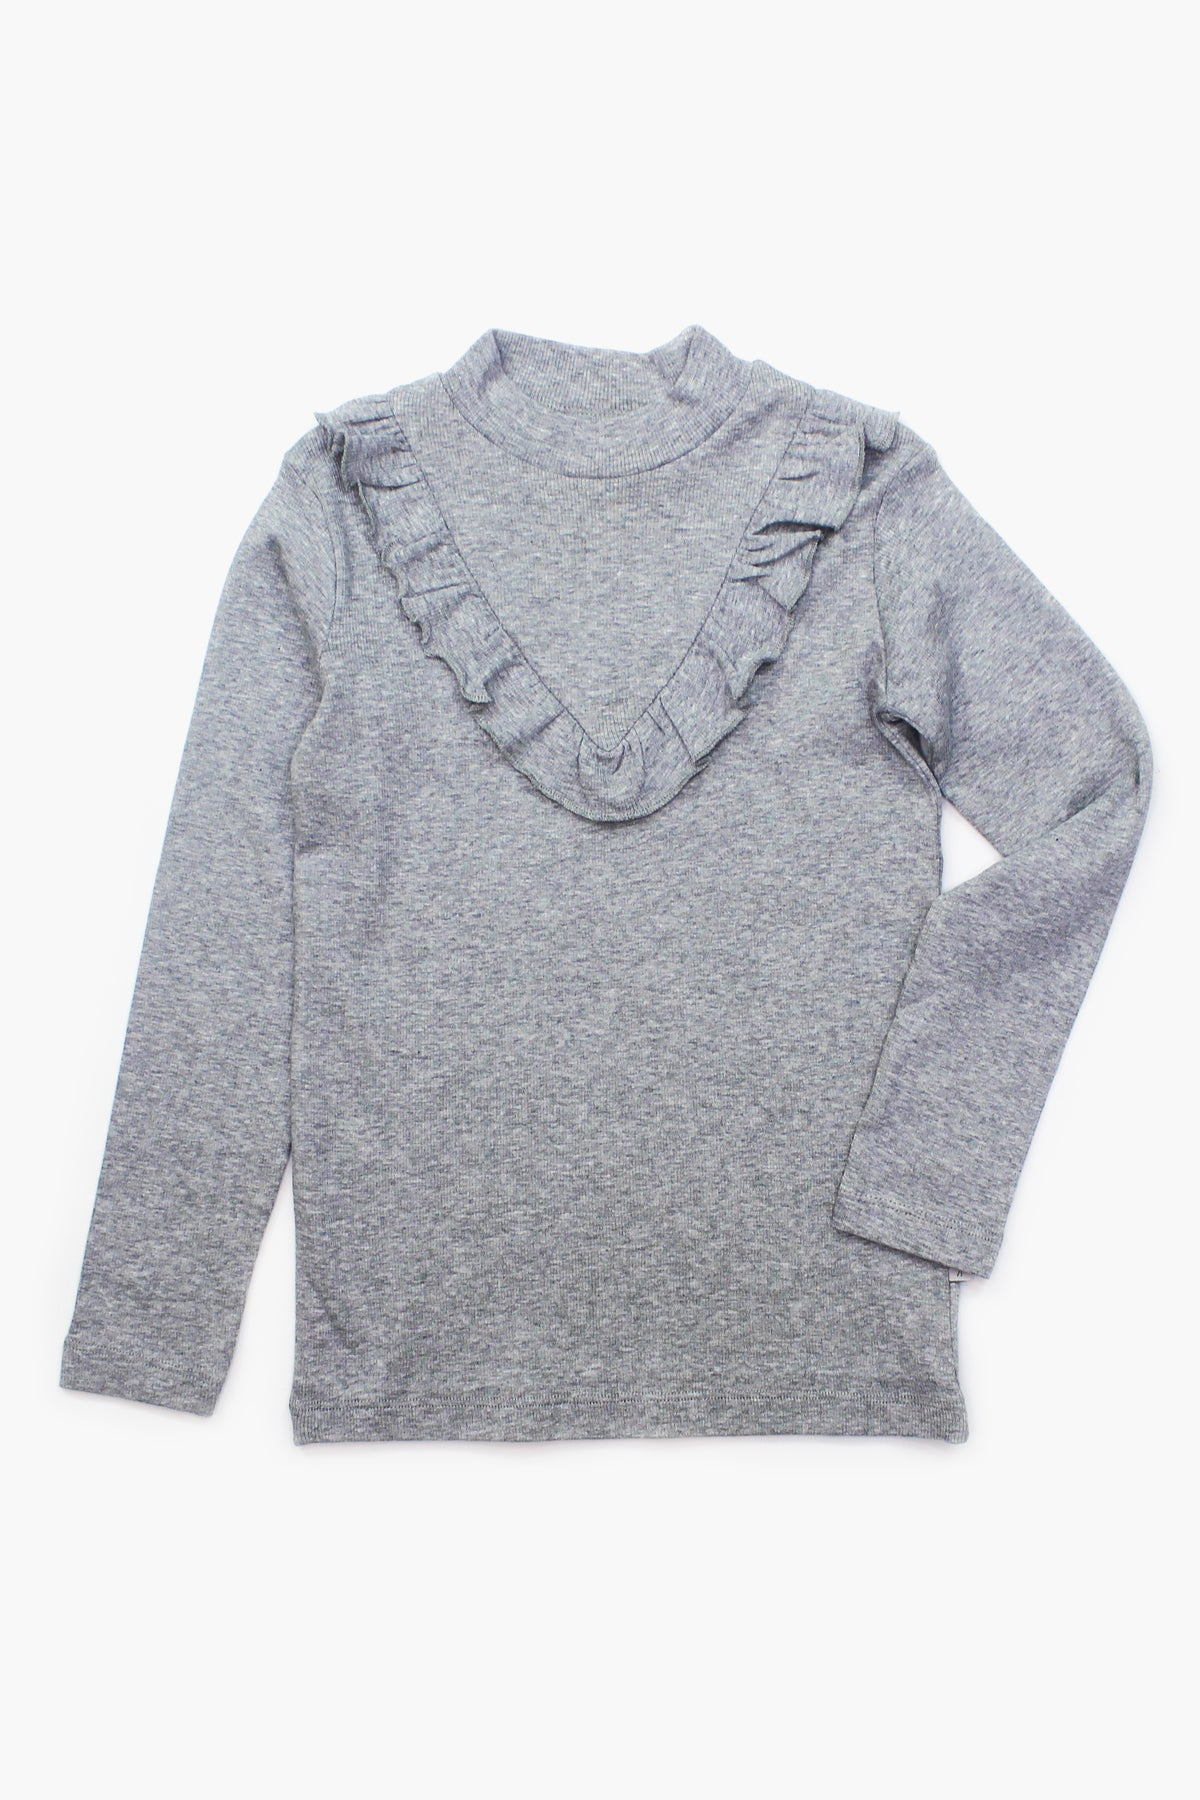 Wheat Ruffle Girls Shirt - Melange Grey